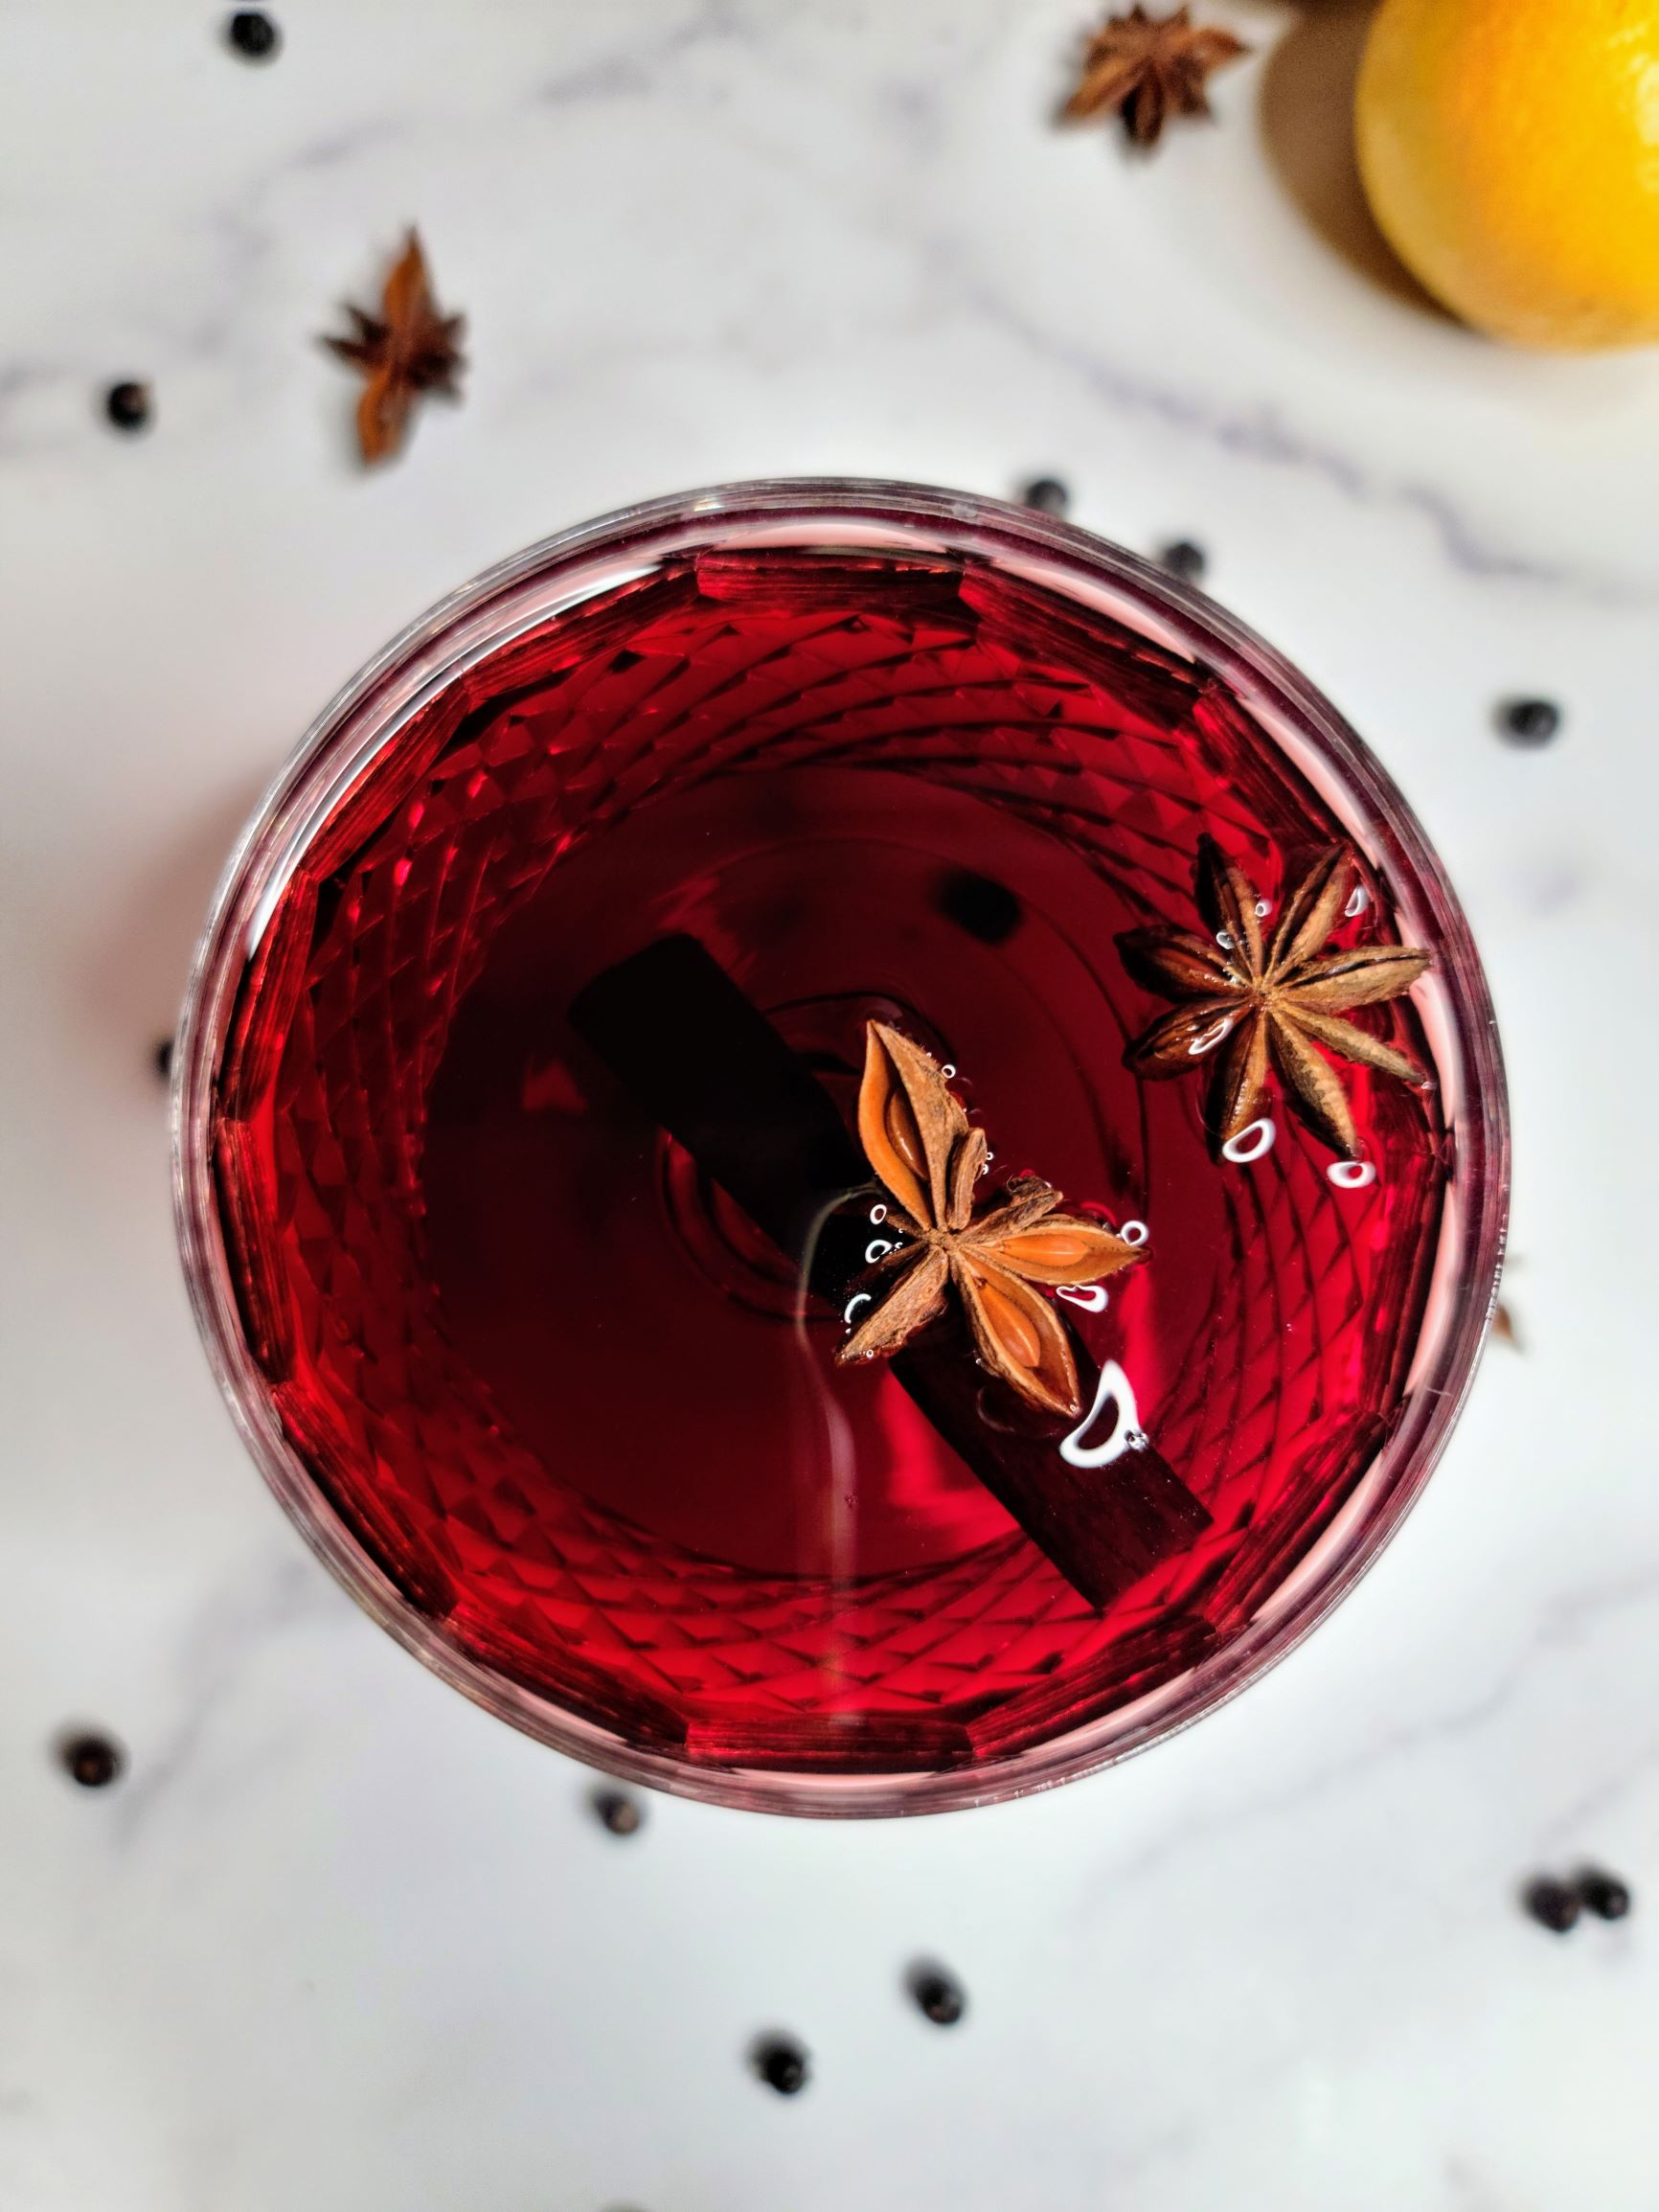 Spiced mulled wine in glass, with cinnamon sticks and star anise.